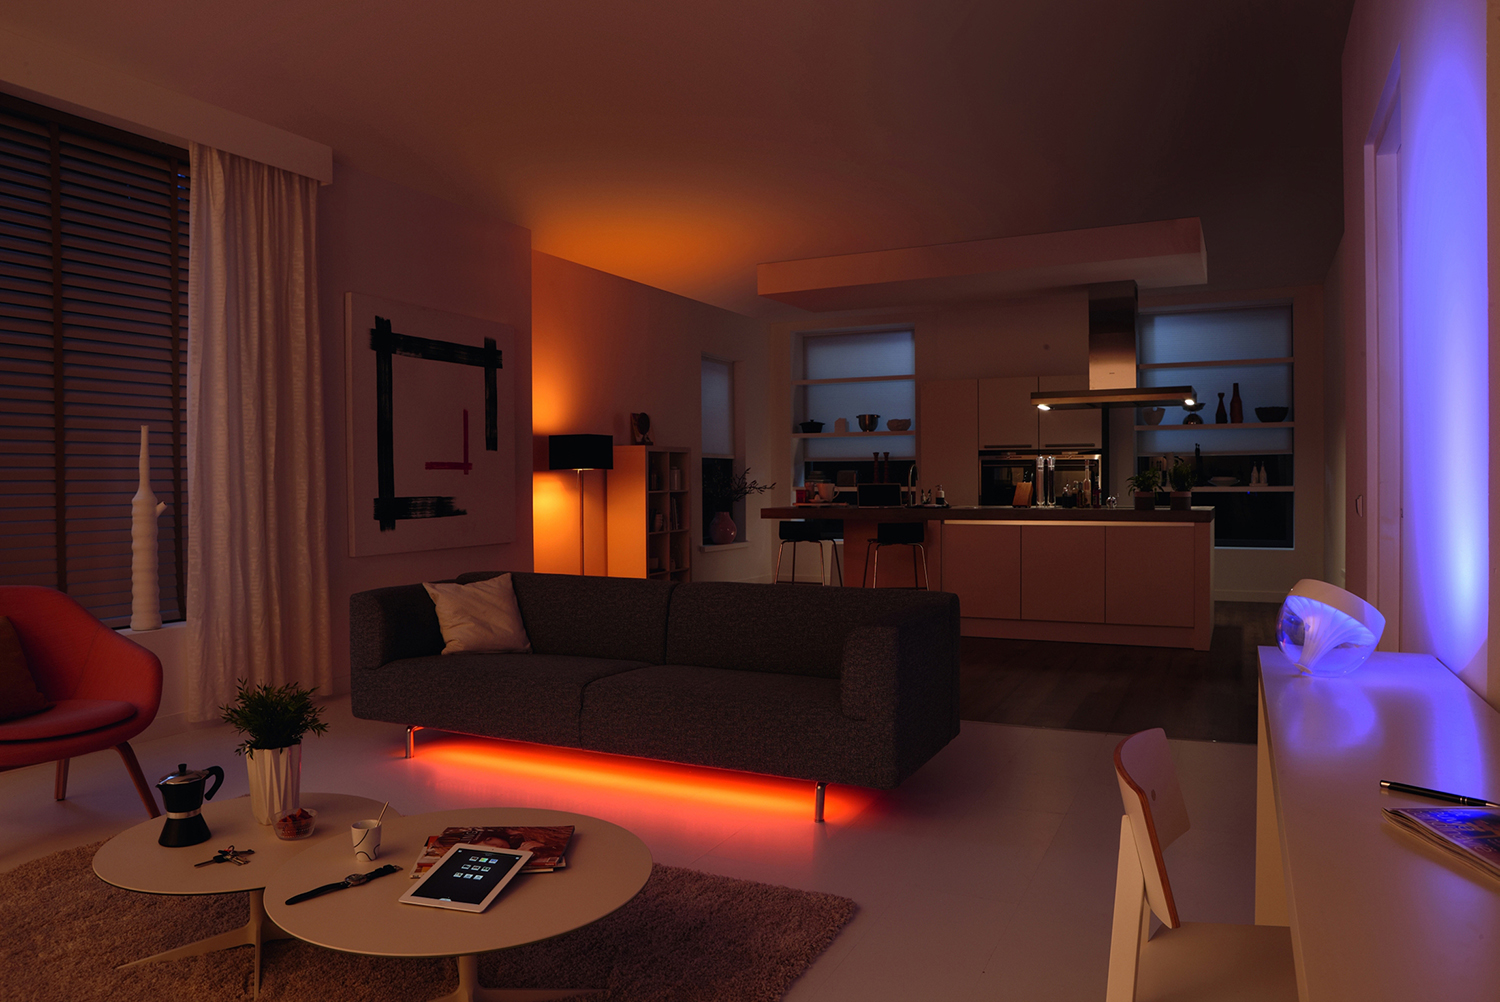 Philips Hue Praxis.Praxis Archive Vernetzte Welt